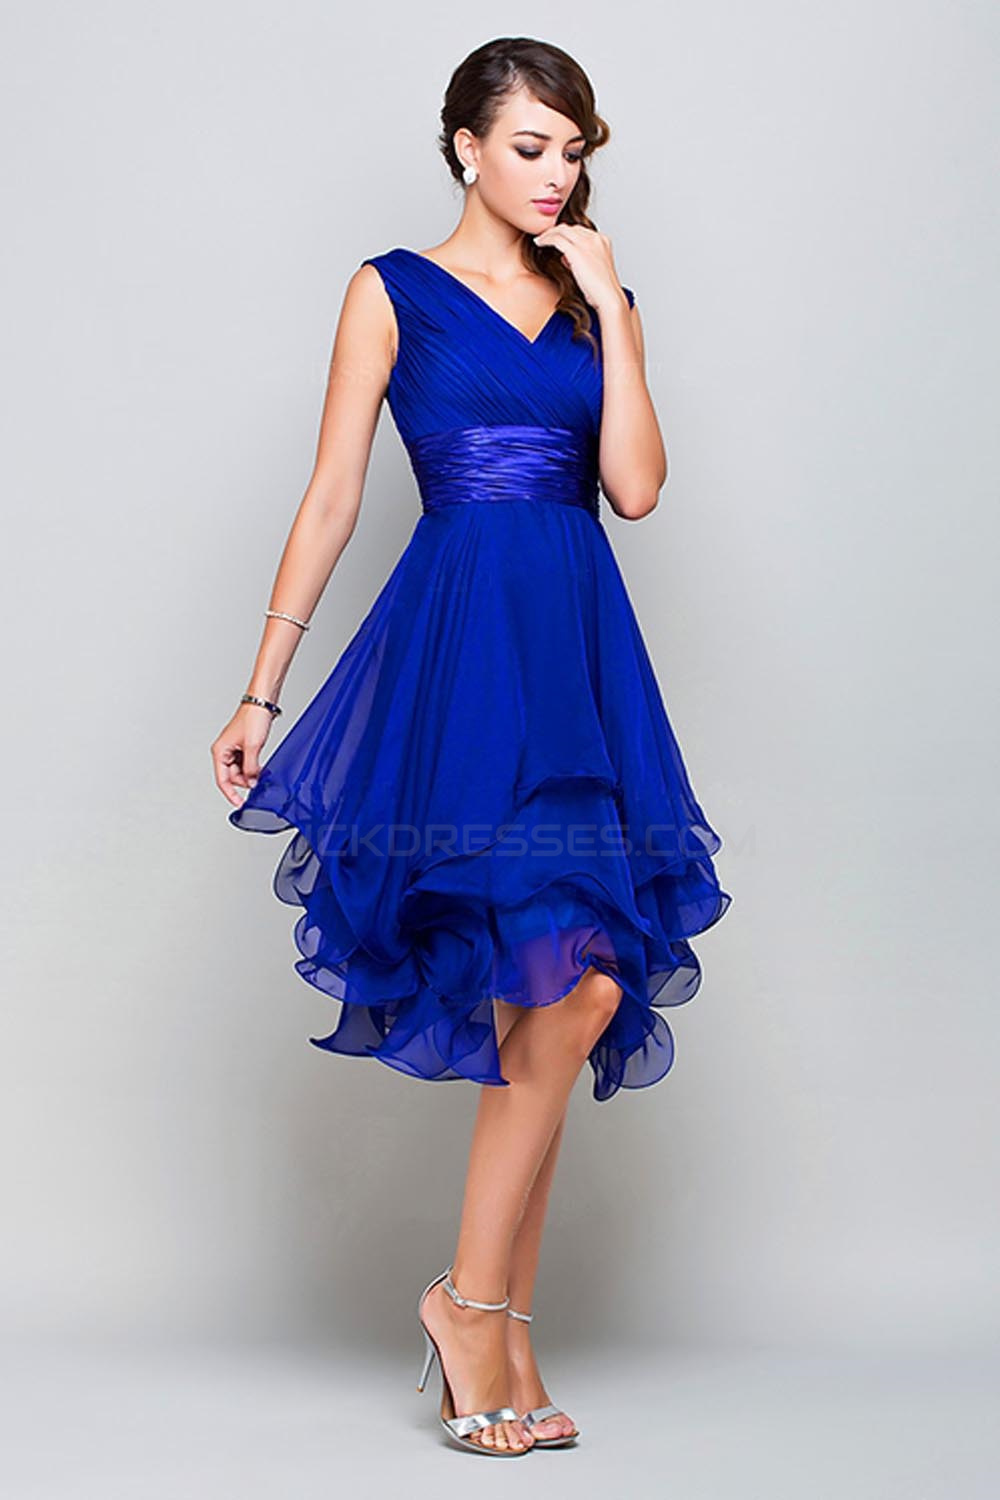 a line princess v neck short royal blue chiffon prom bridesmaid party dresses ed010372. Black Bedroom Furniture Sets. Home Design Ideas